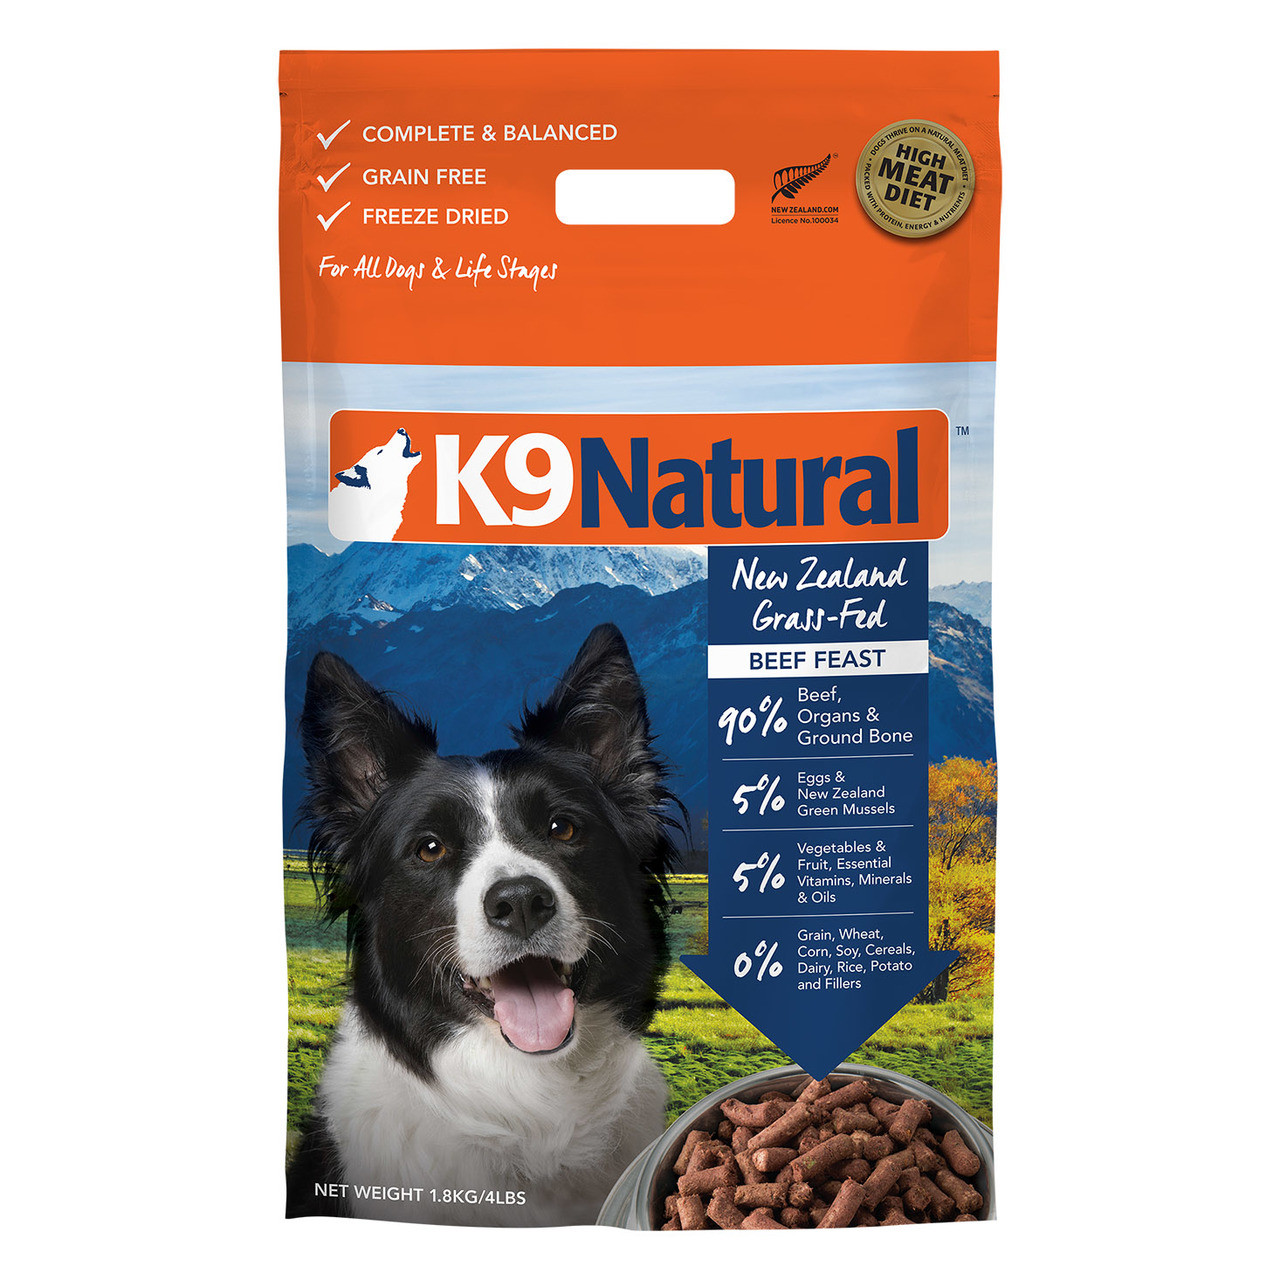 K9 Natural Freeze Dried Beef Feast Dog Food